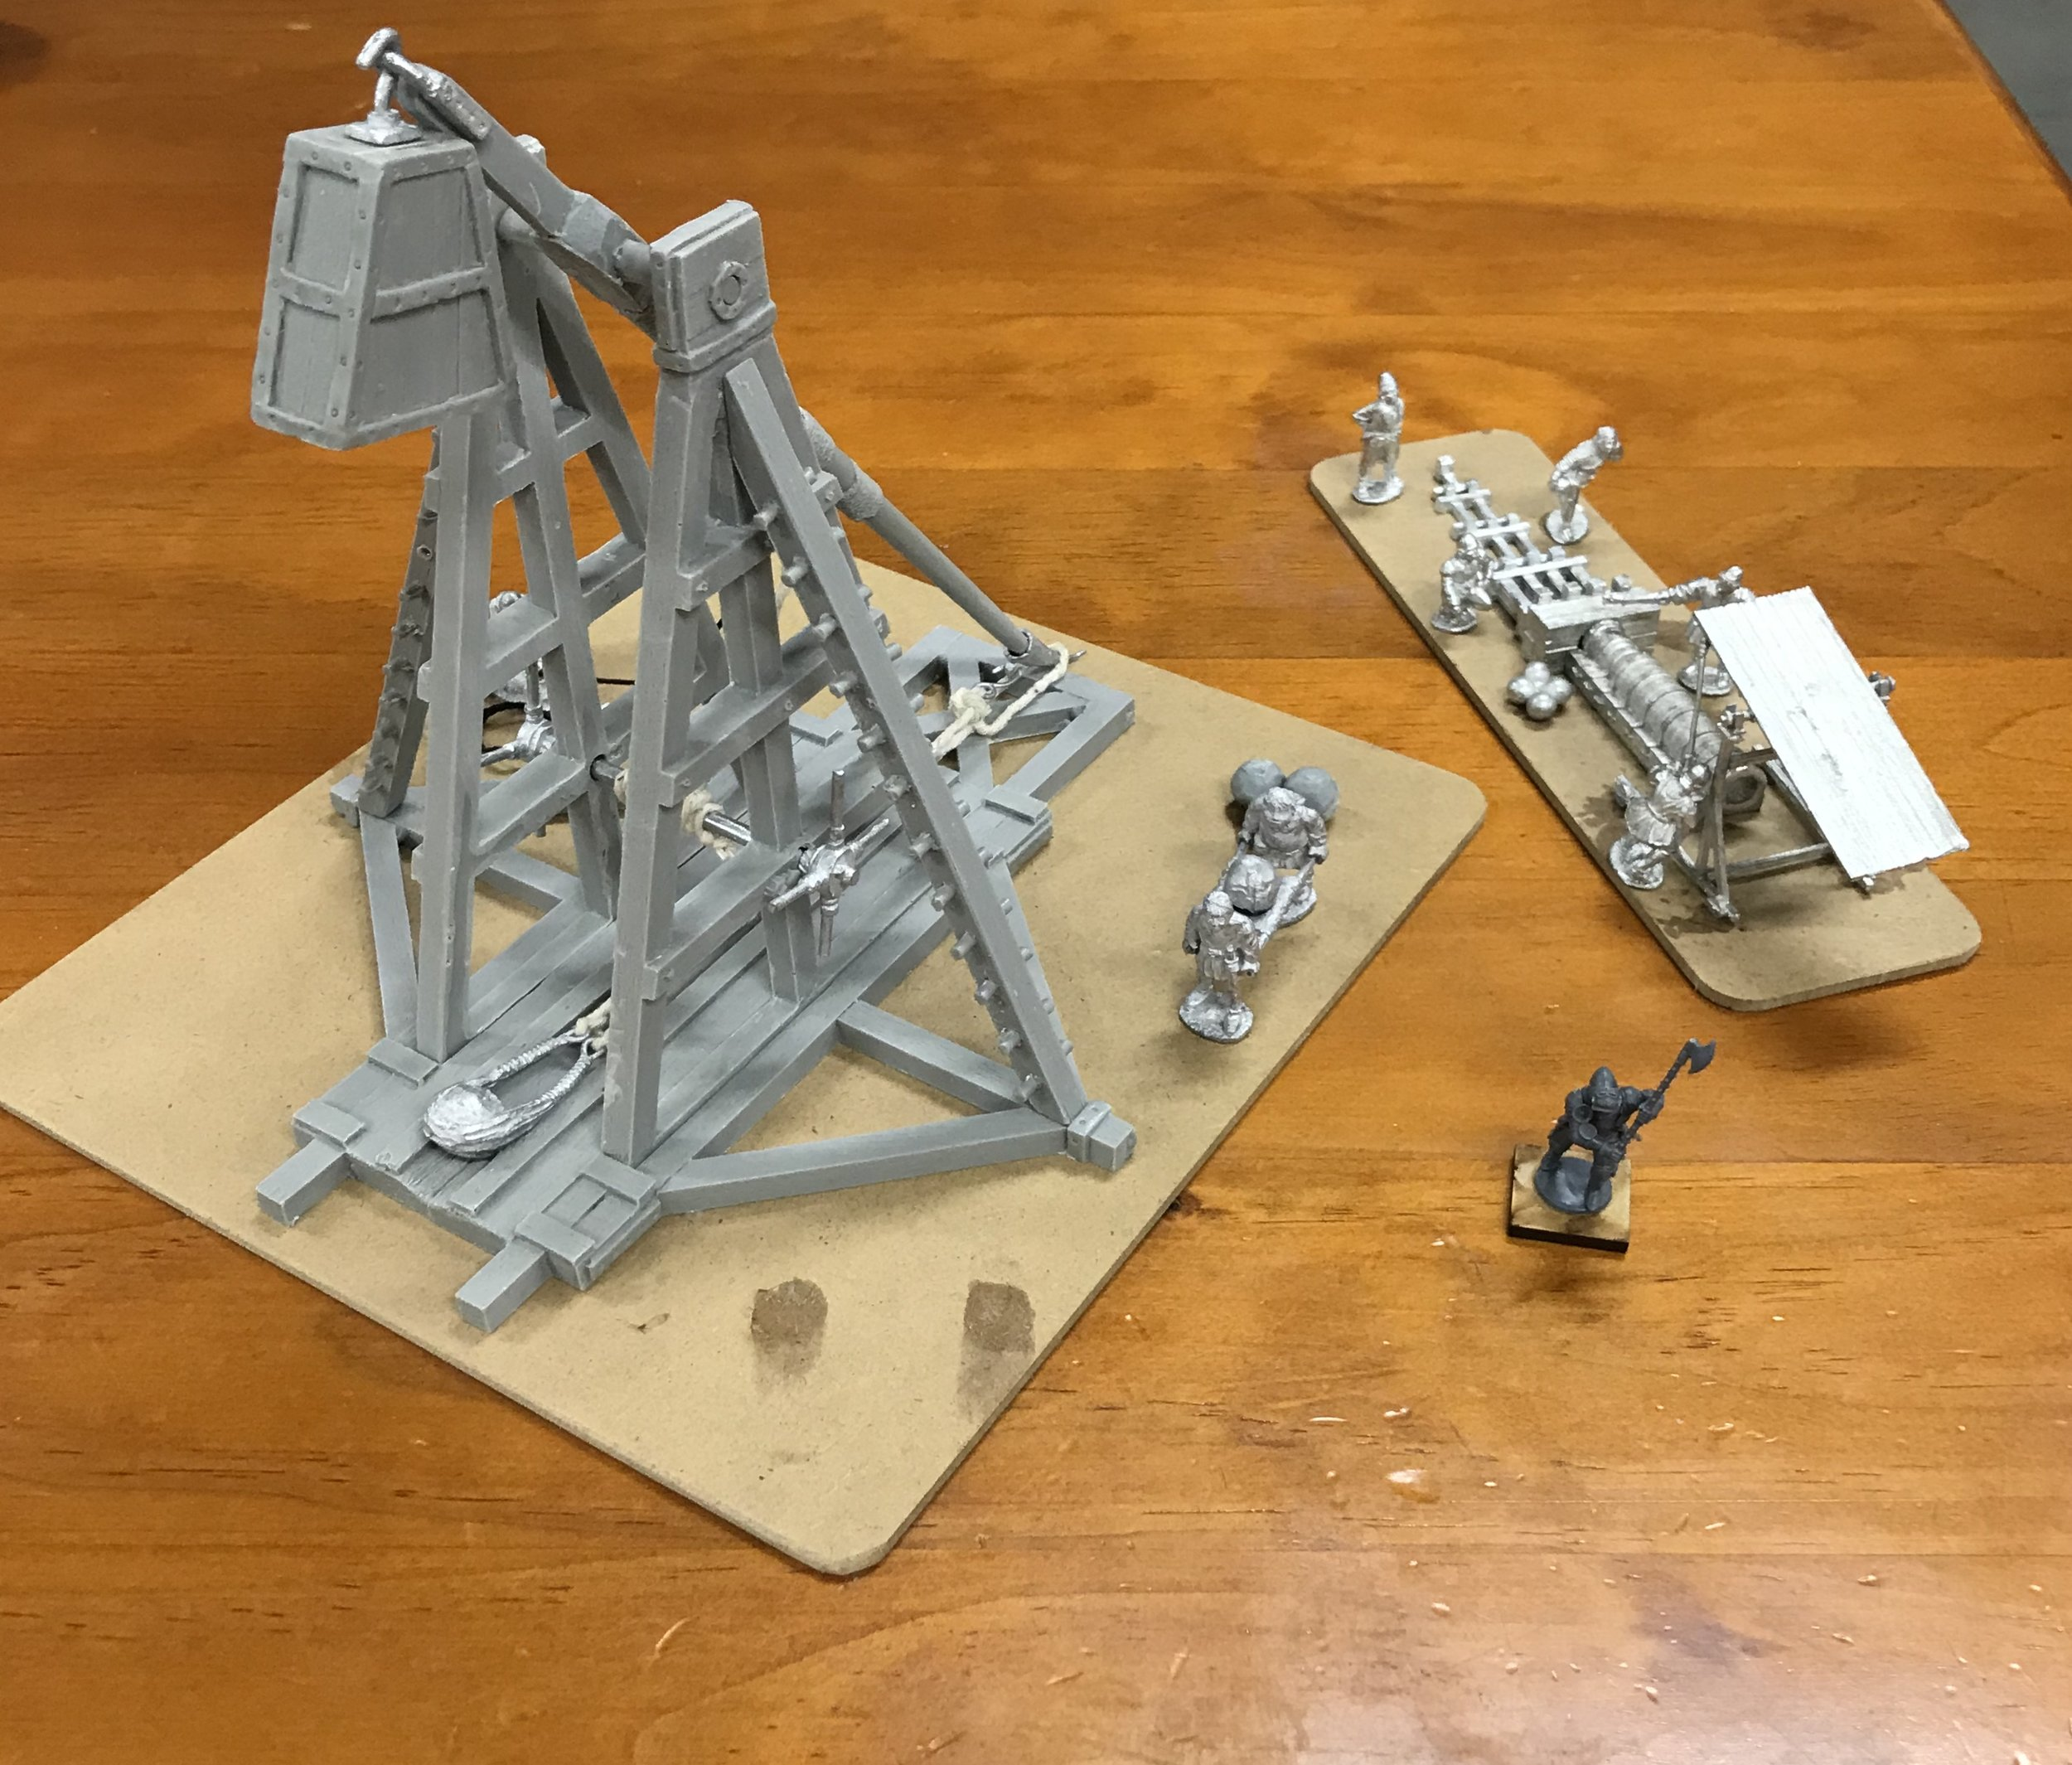 Gripping Beast Trebuchet and Perry Miniatures Bombard... so good!